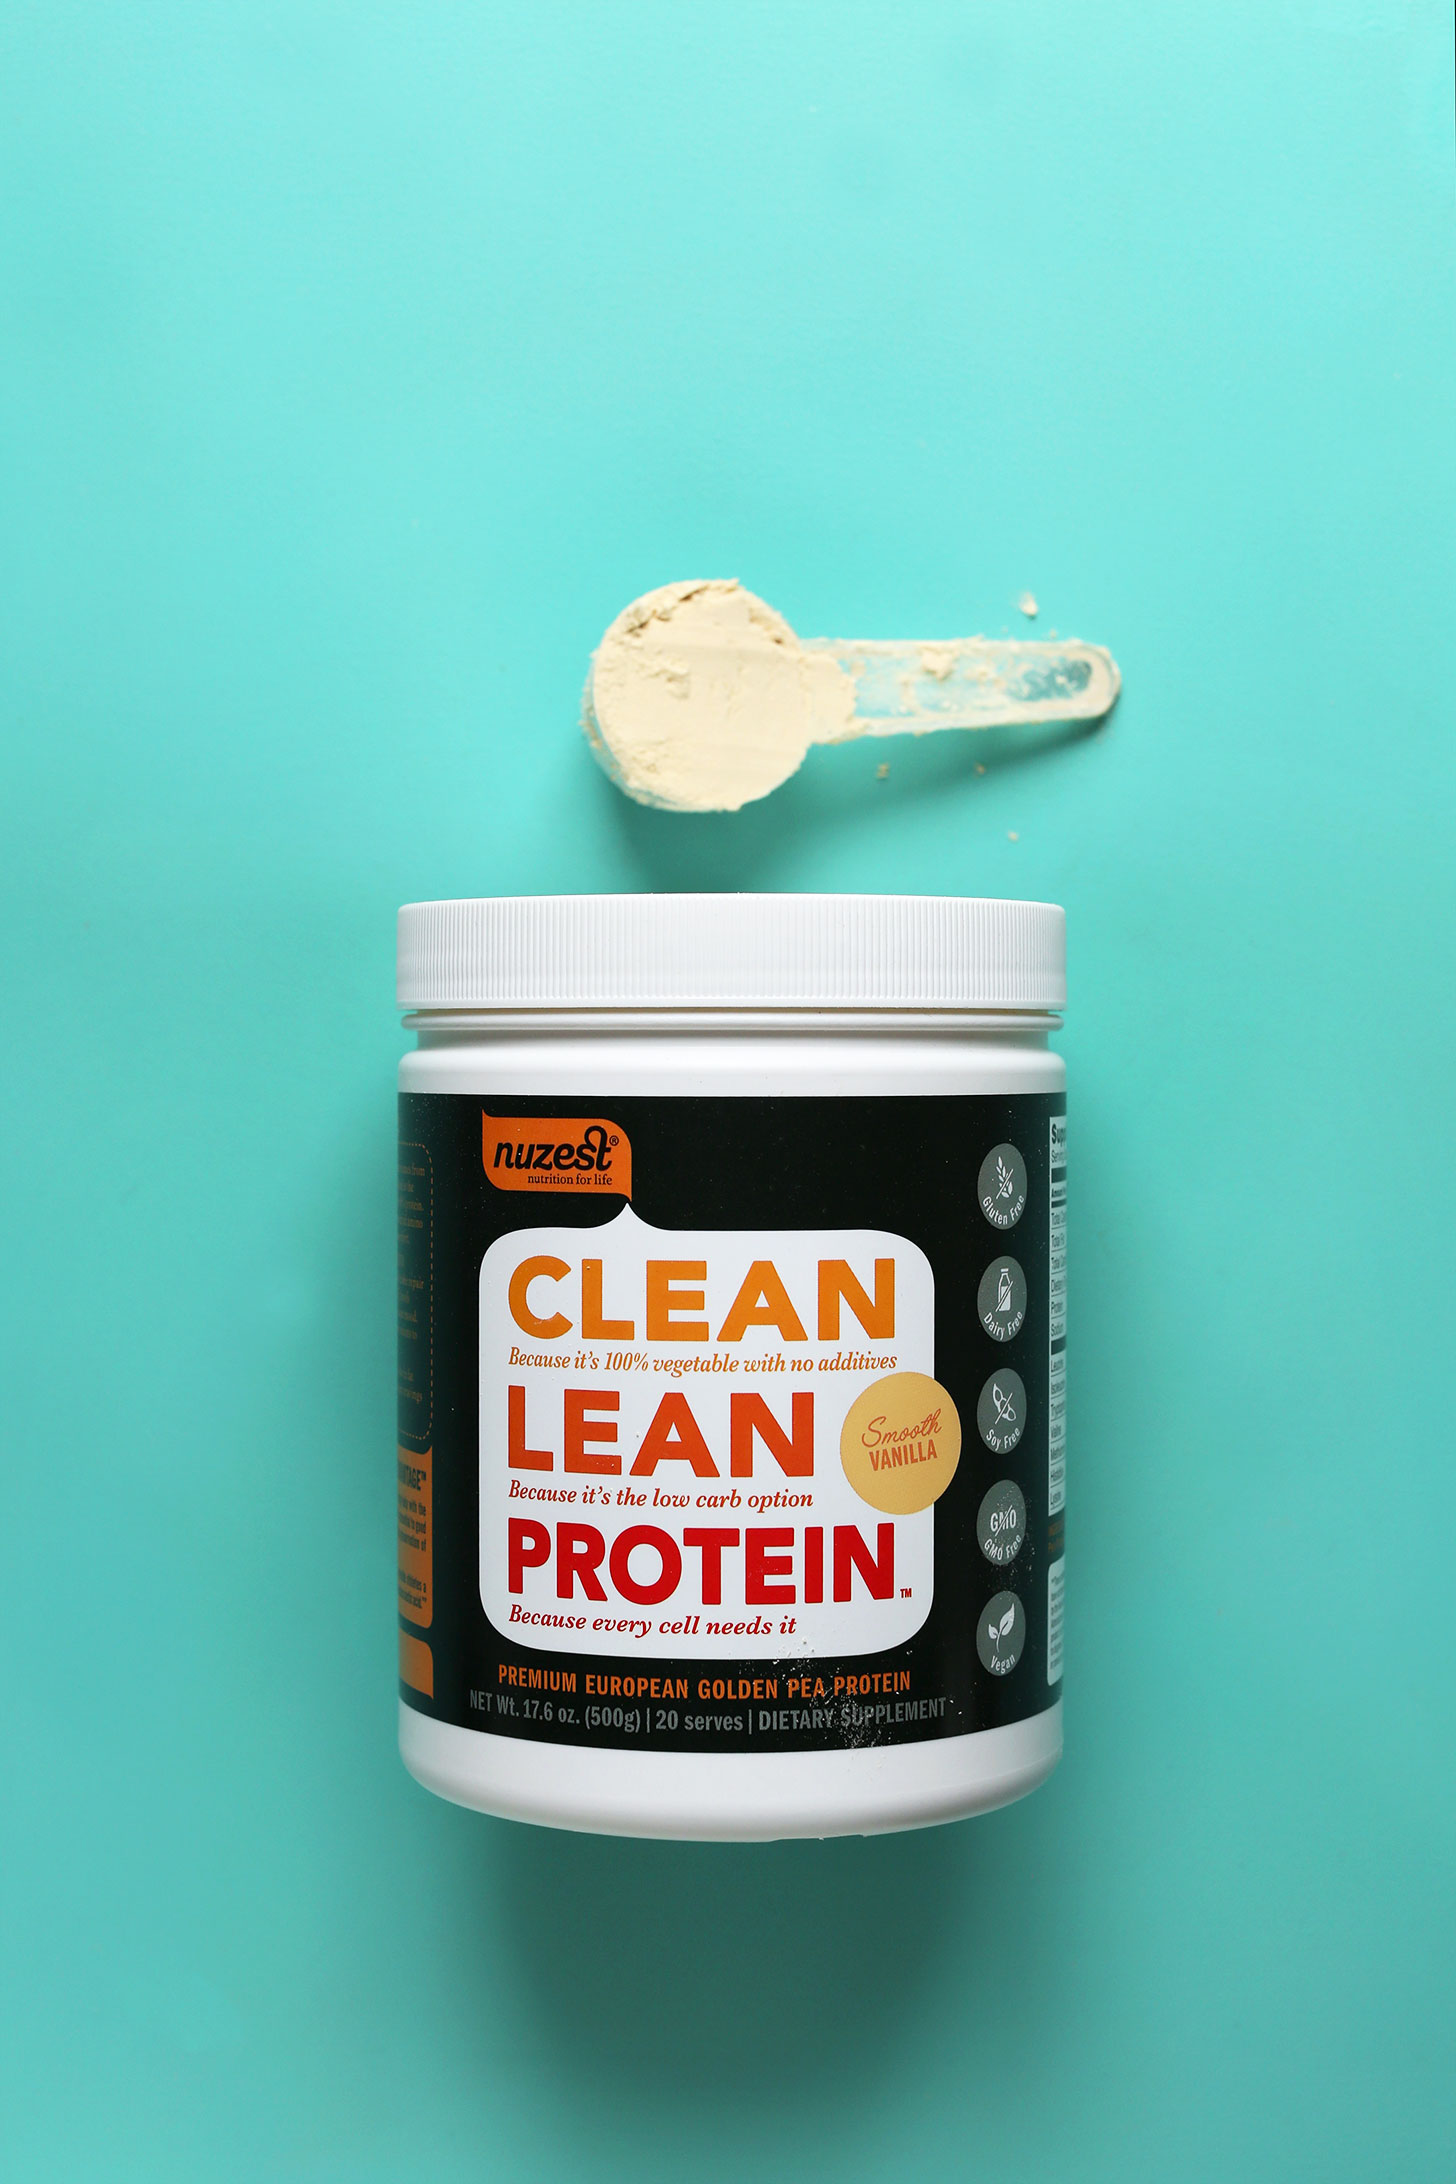 Clean Lean Protein vanilla protein powder review